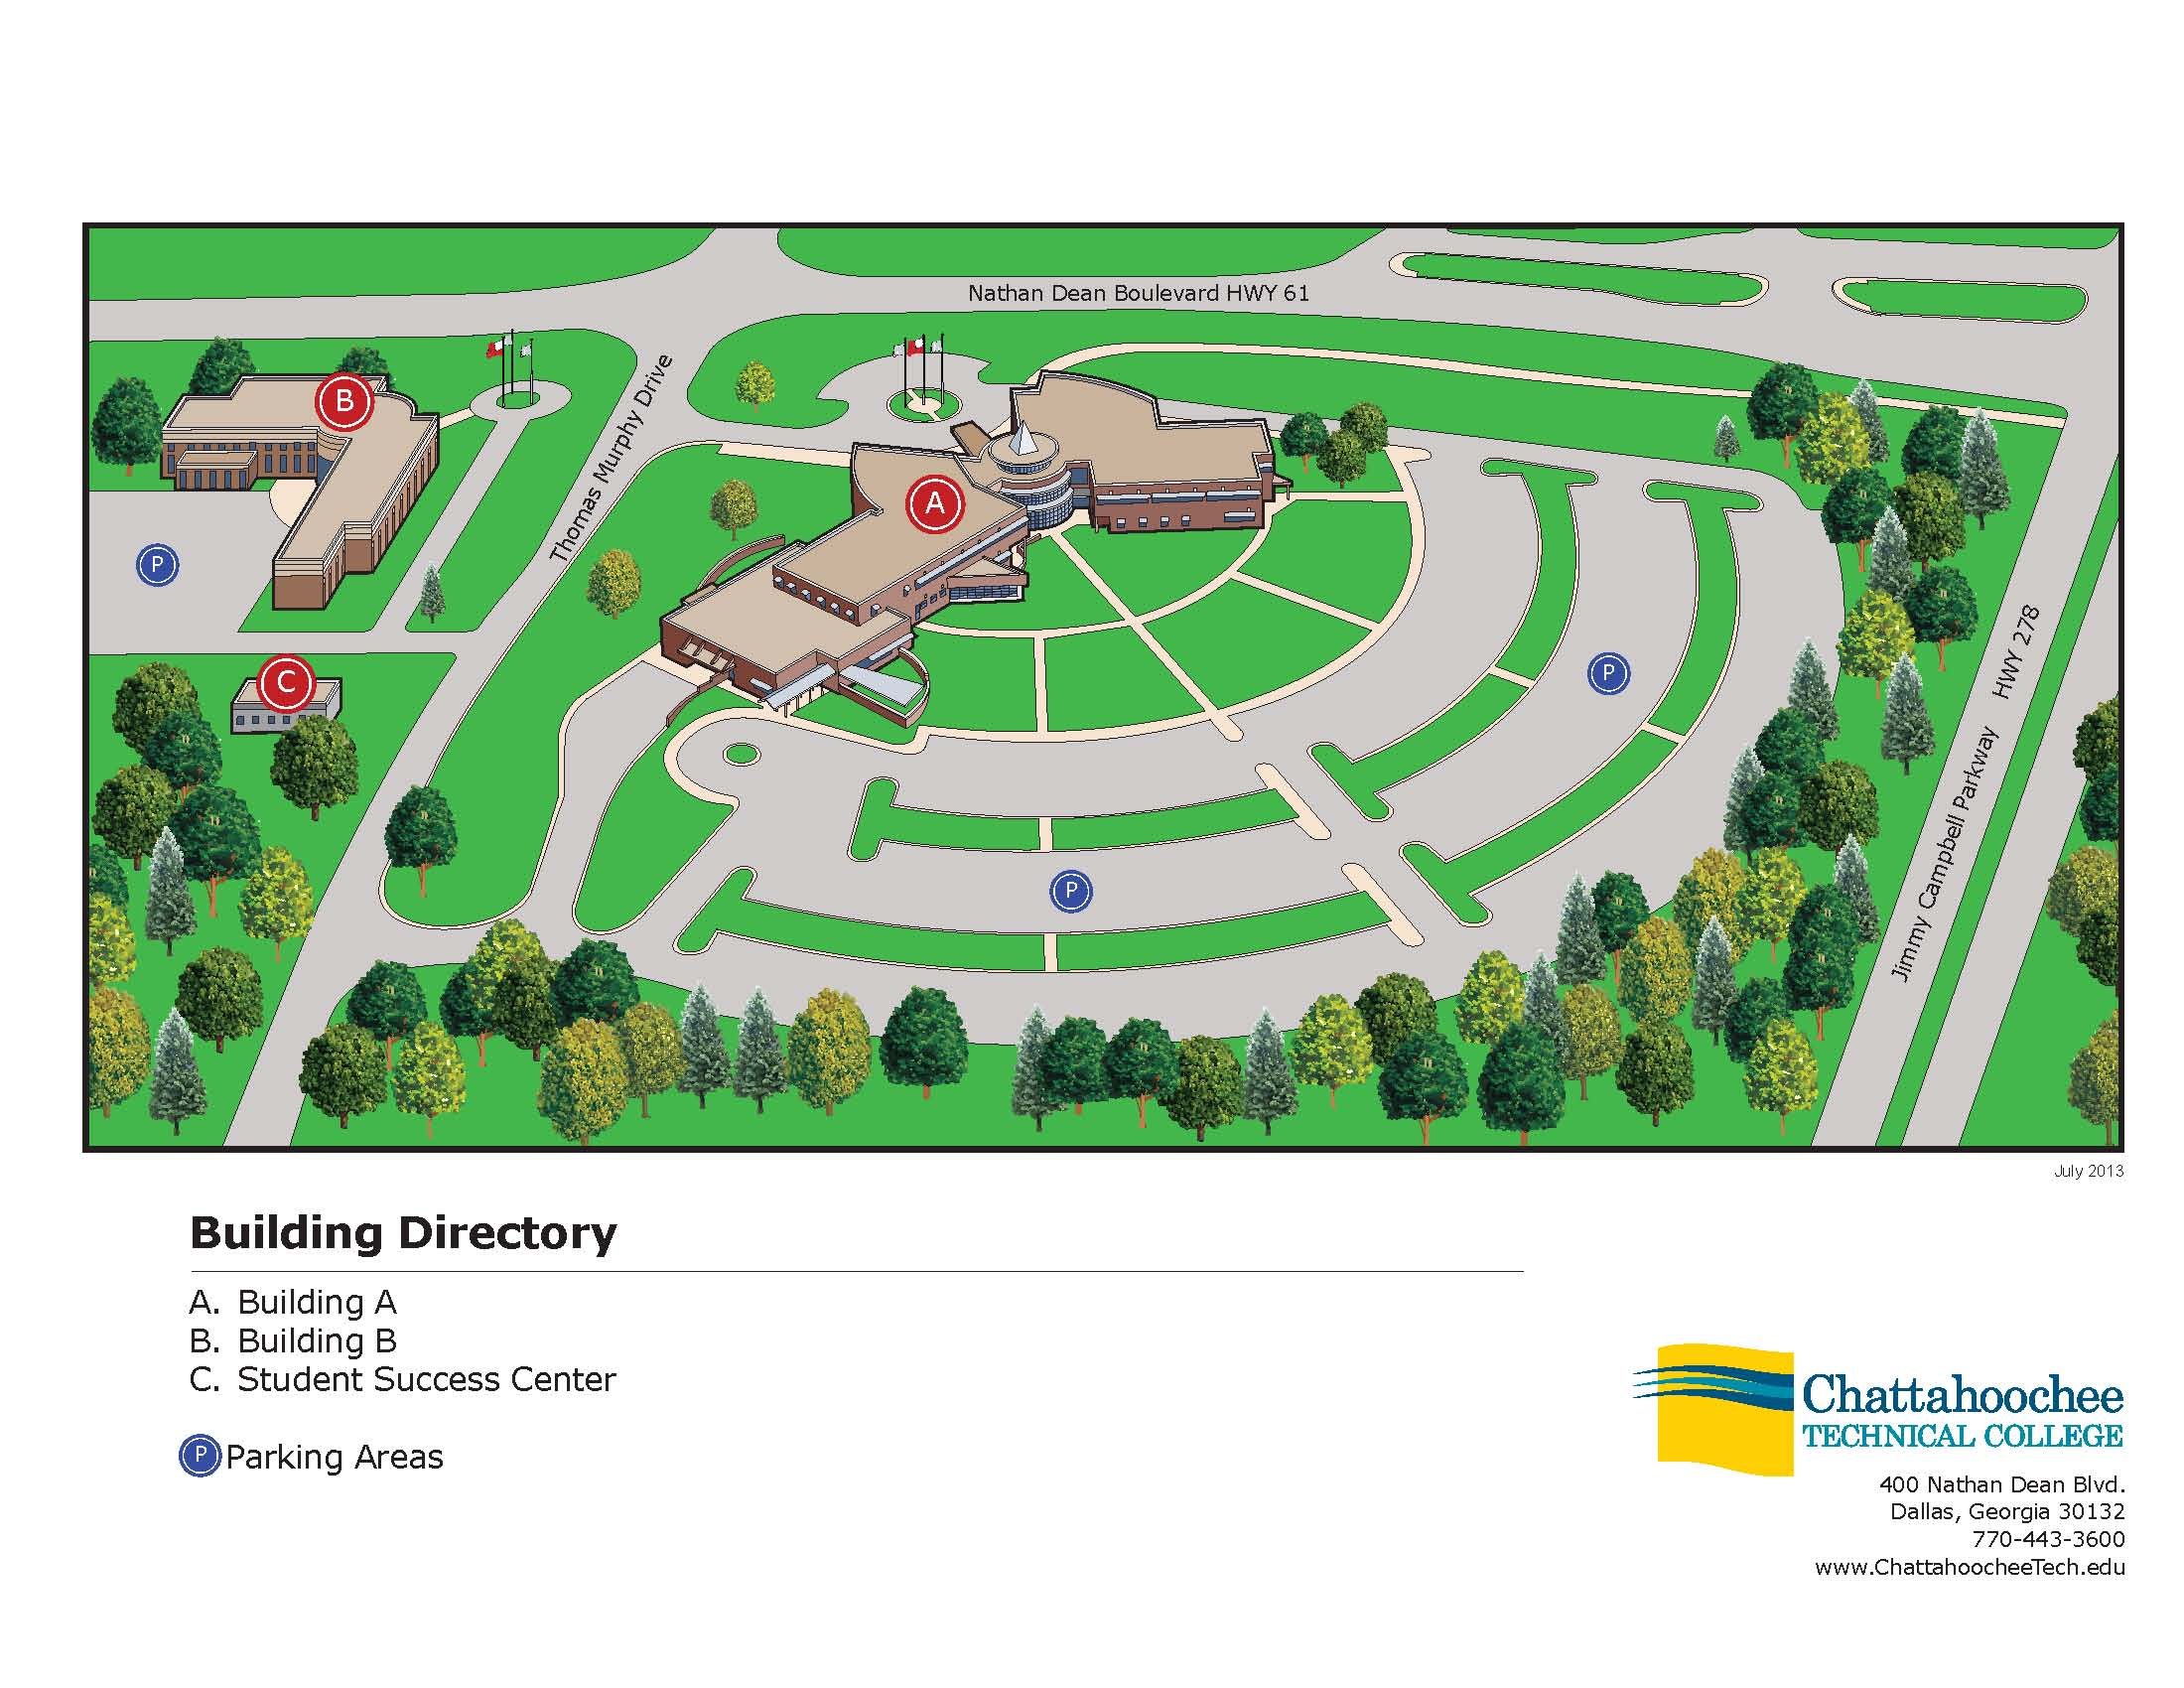 chattahoochee tech marietta campus map Ctc Paulding3d Chattahoochee Technical College chattahoochee tech marietta campus map